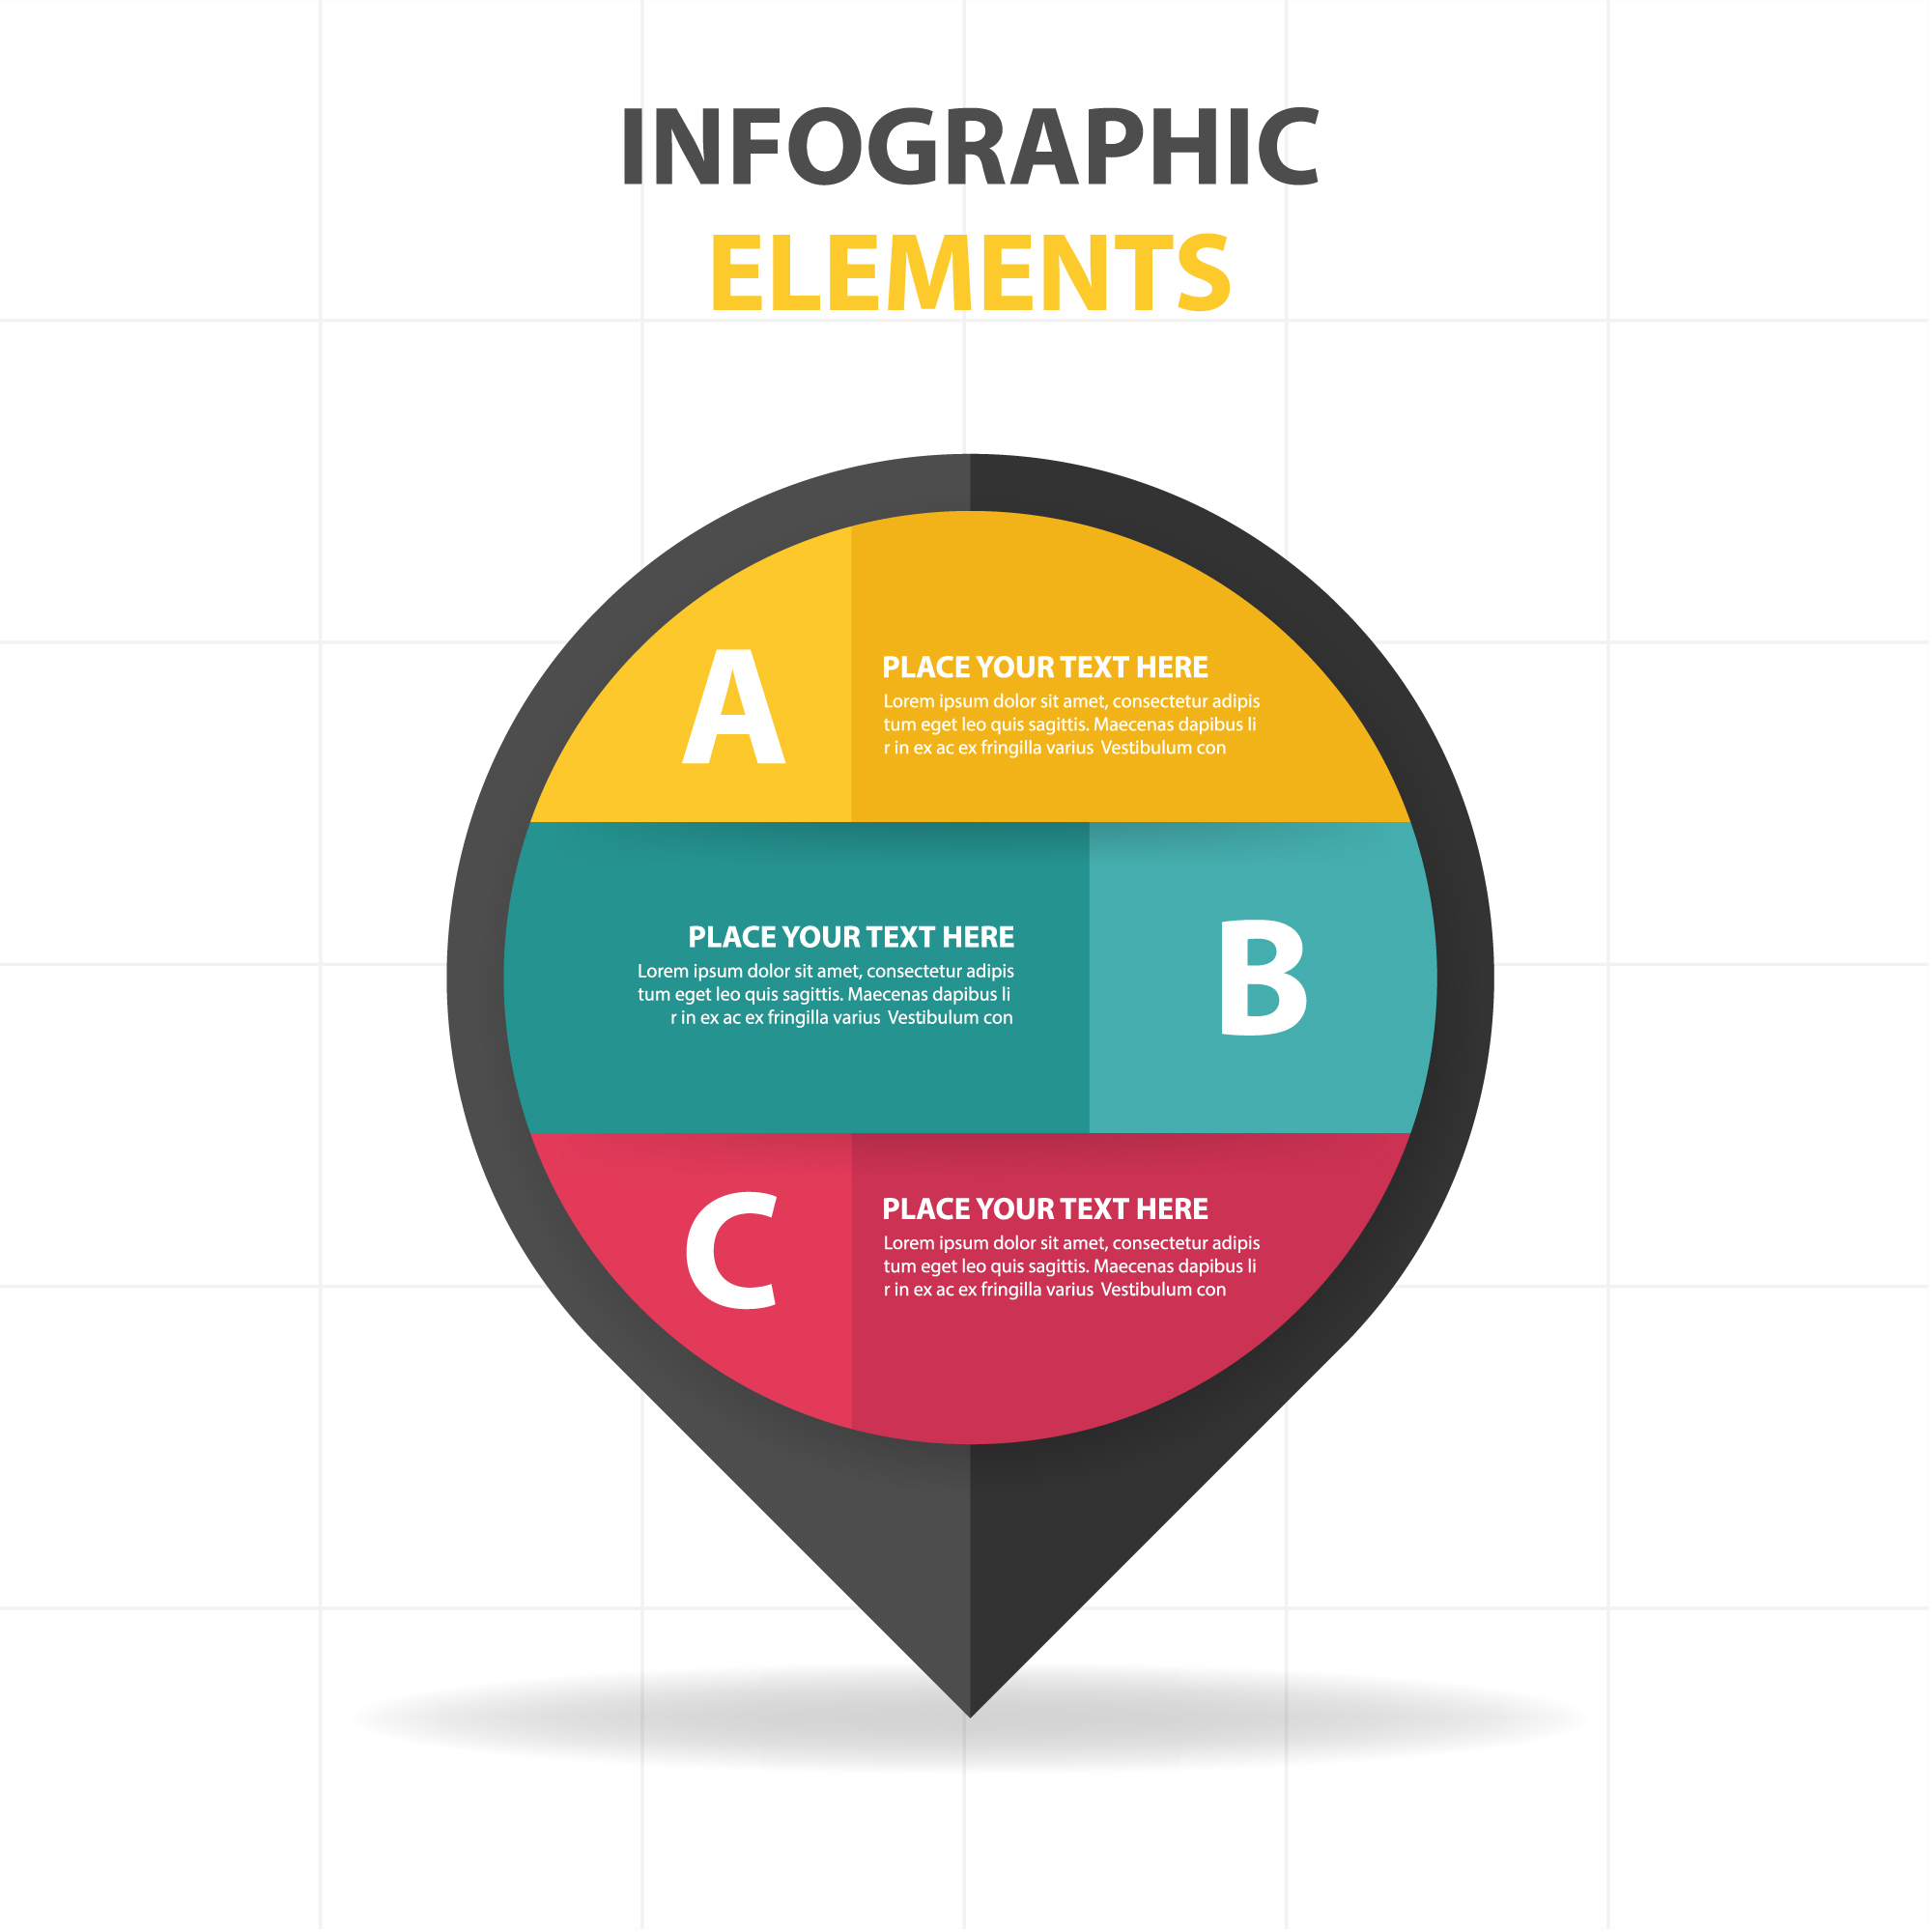 Circular infographic elements template